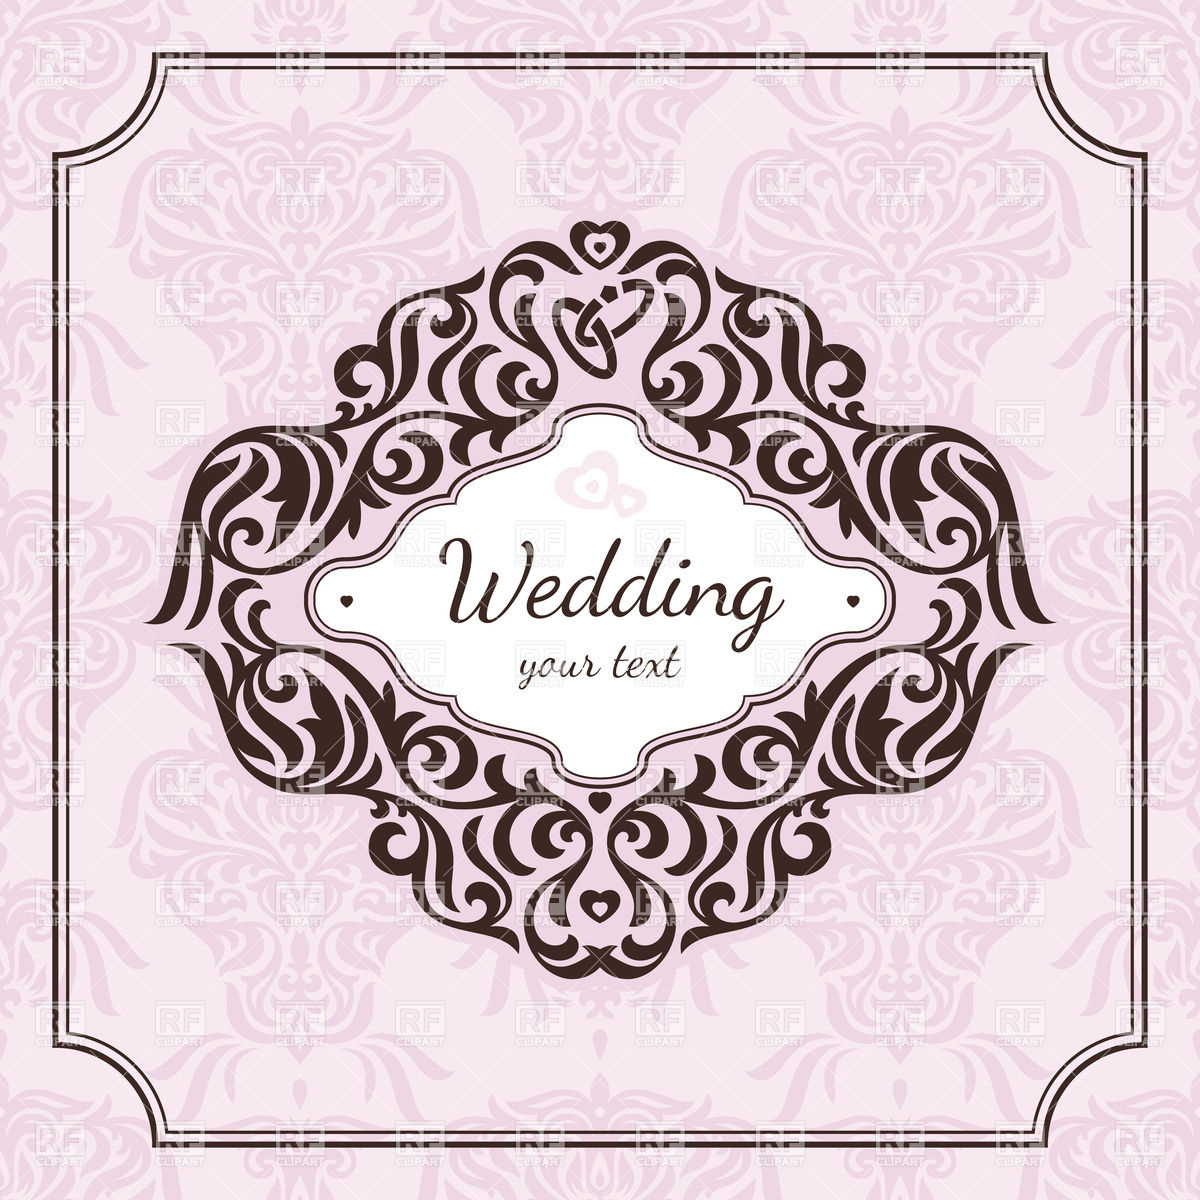 1200x1200 Wedding Card Border Vector Free Download Luxury Vintage Floral